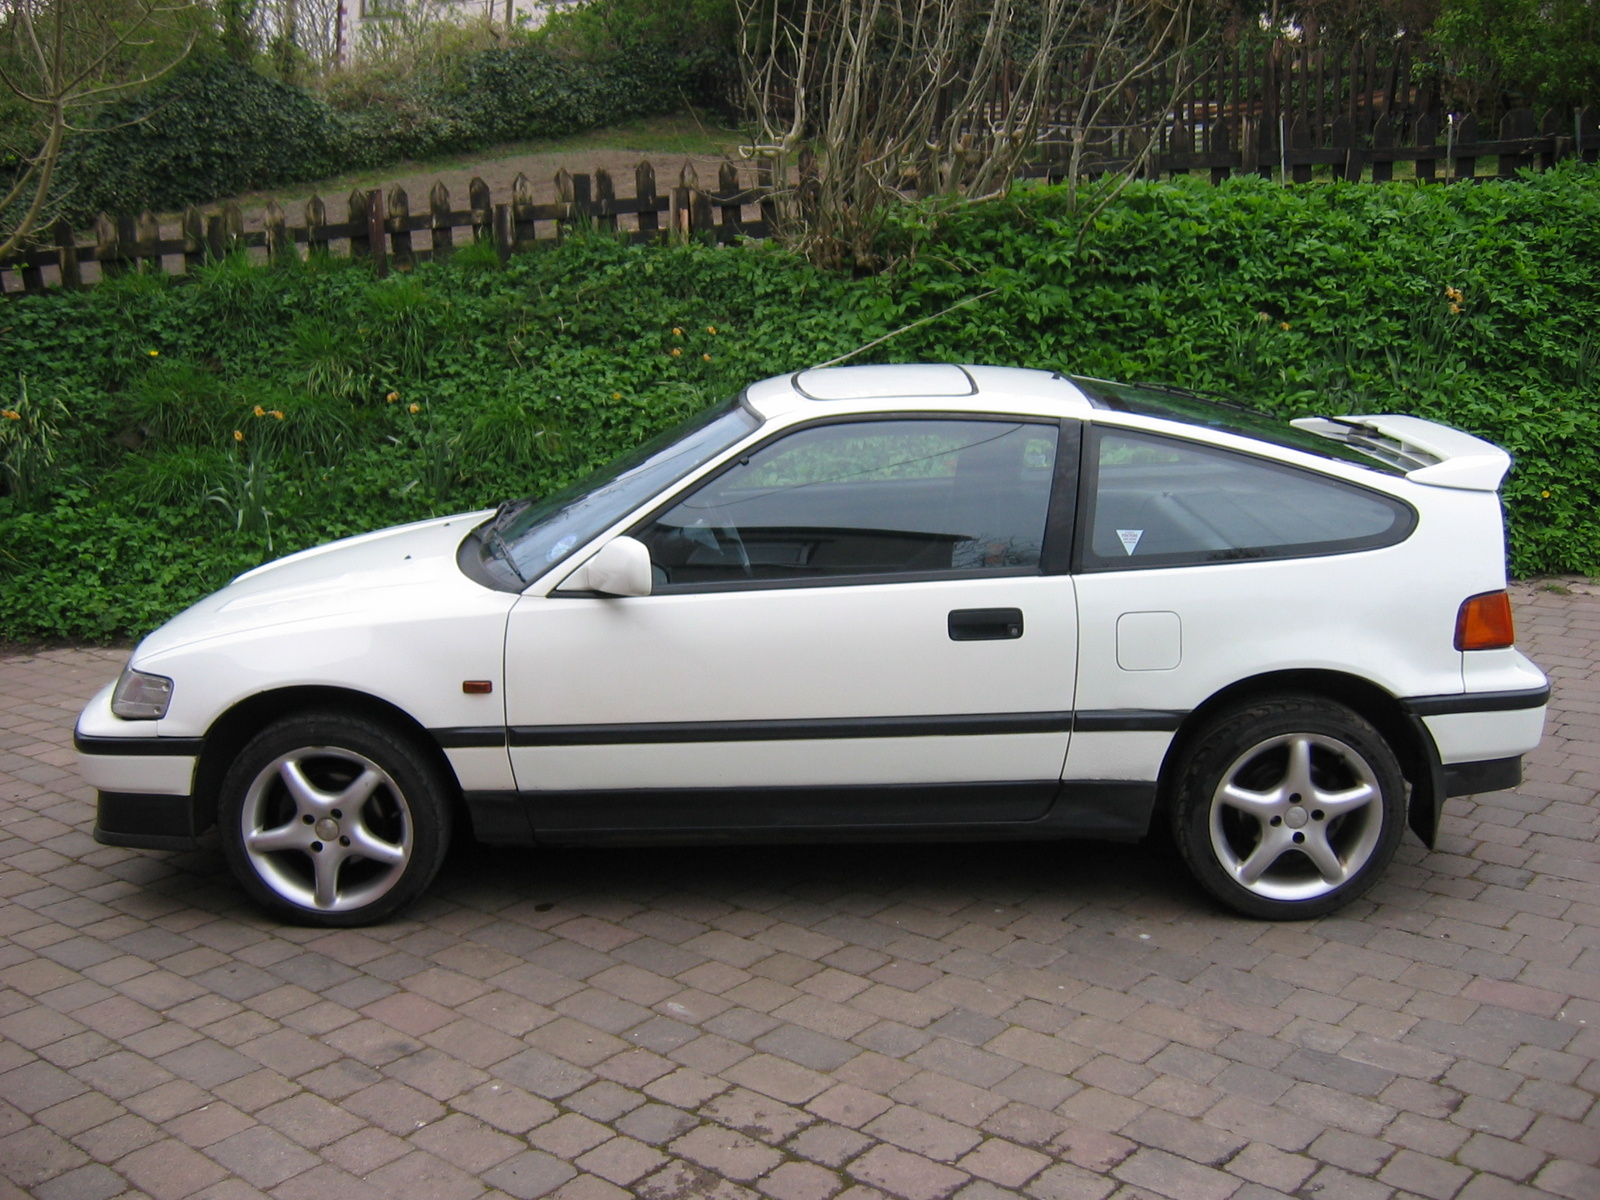 Picture of 1990 Honda Civic CRX CRX